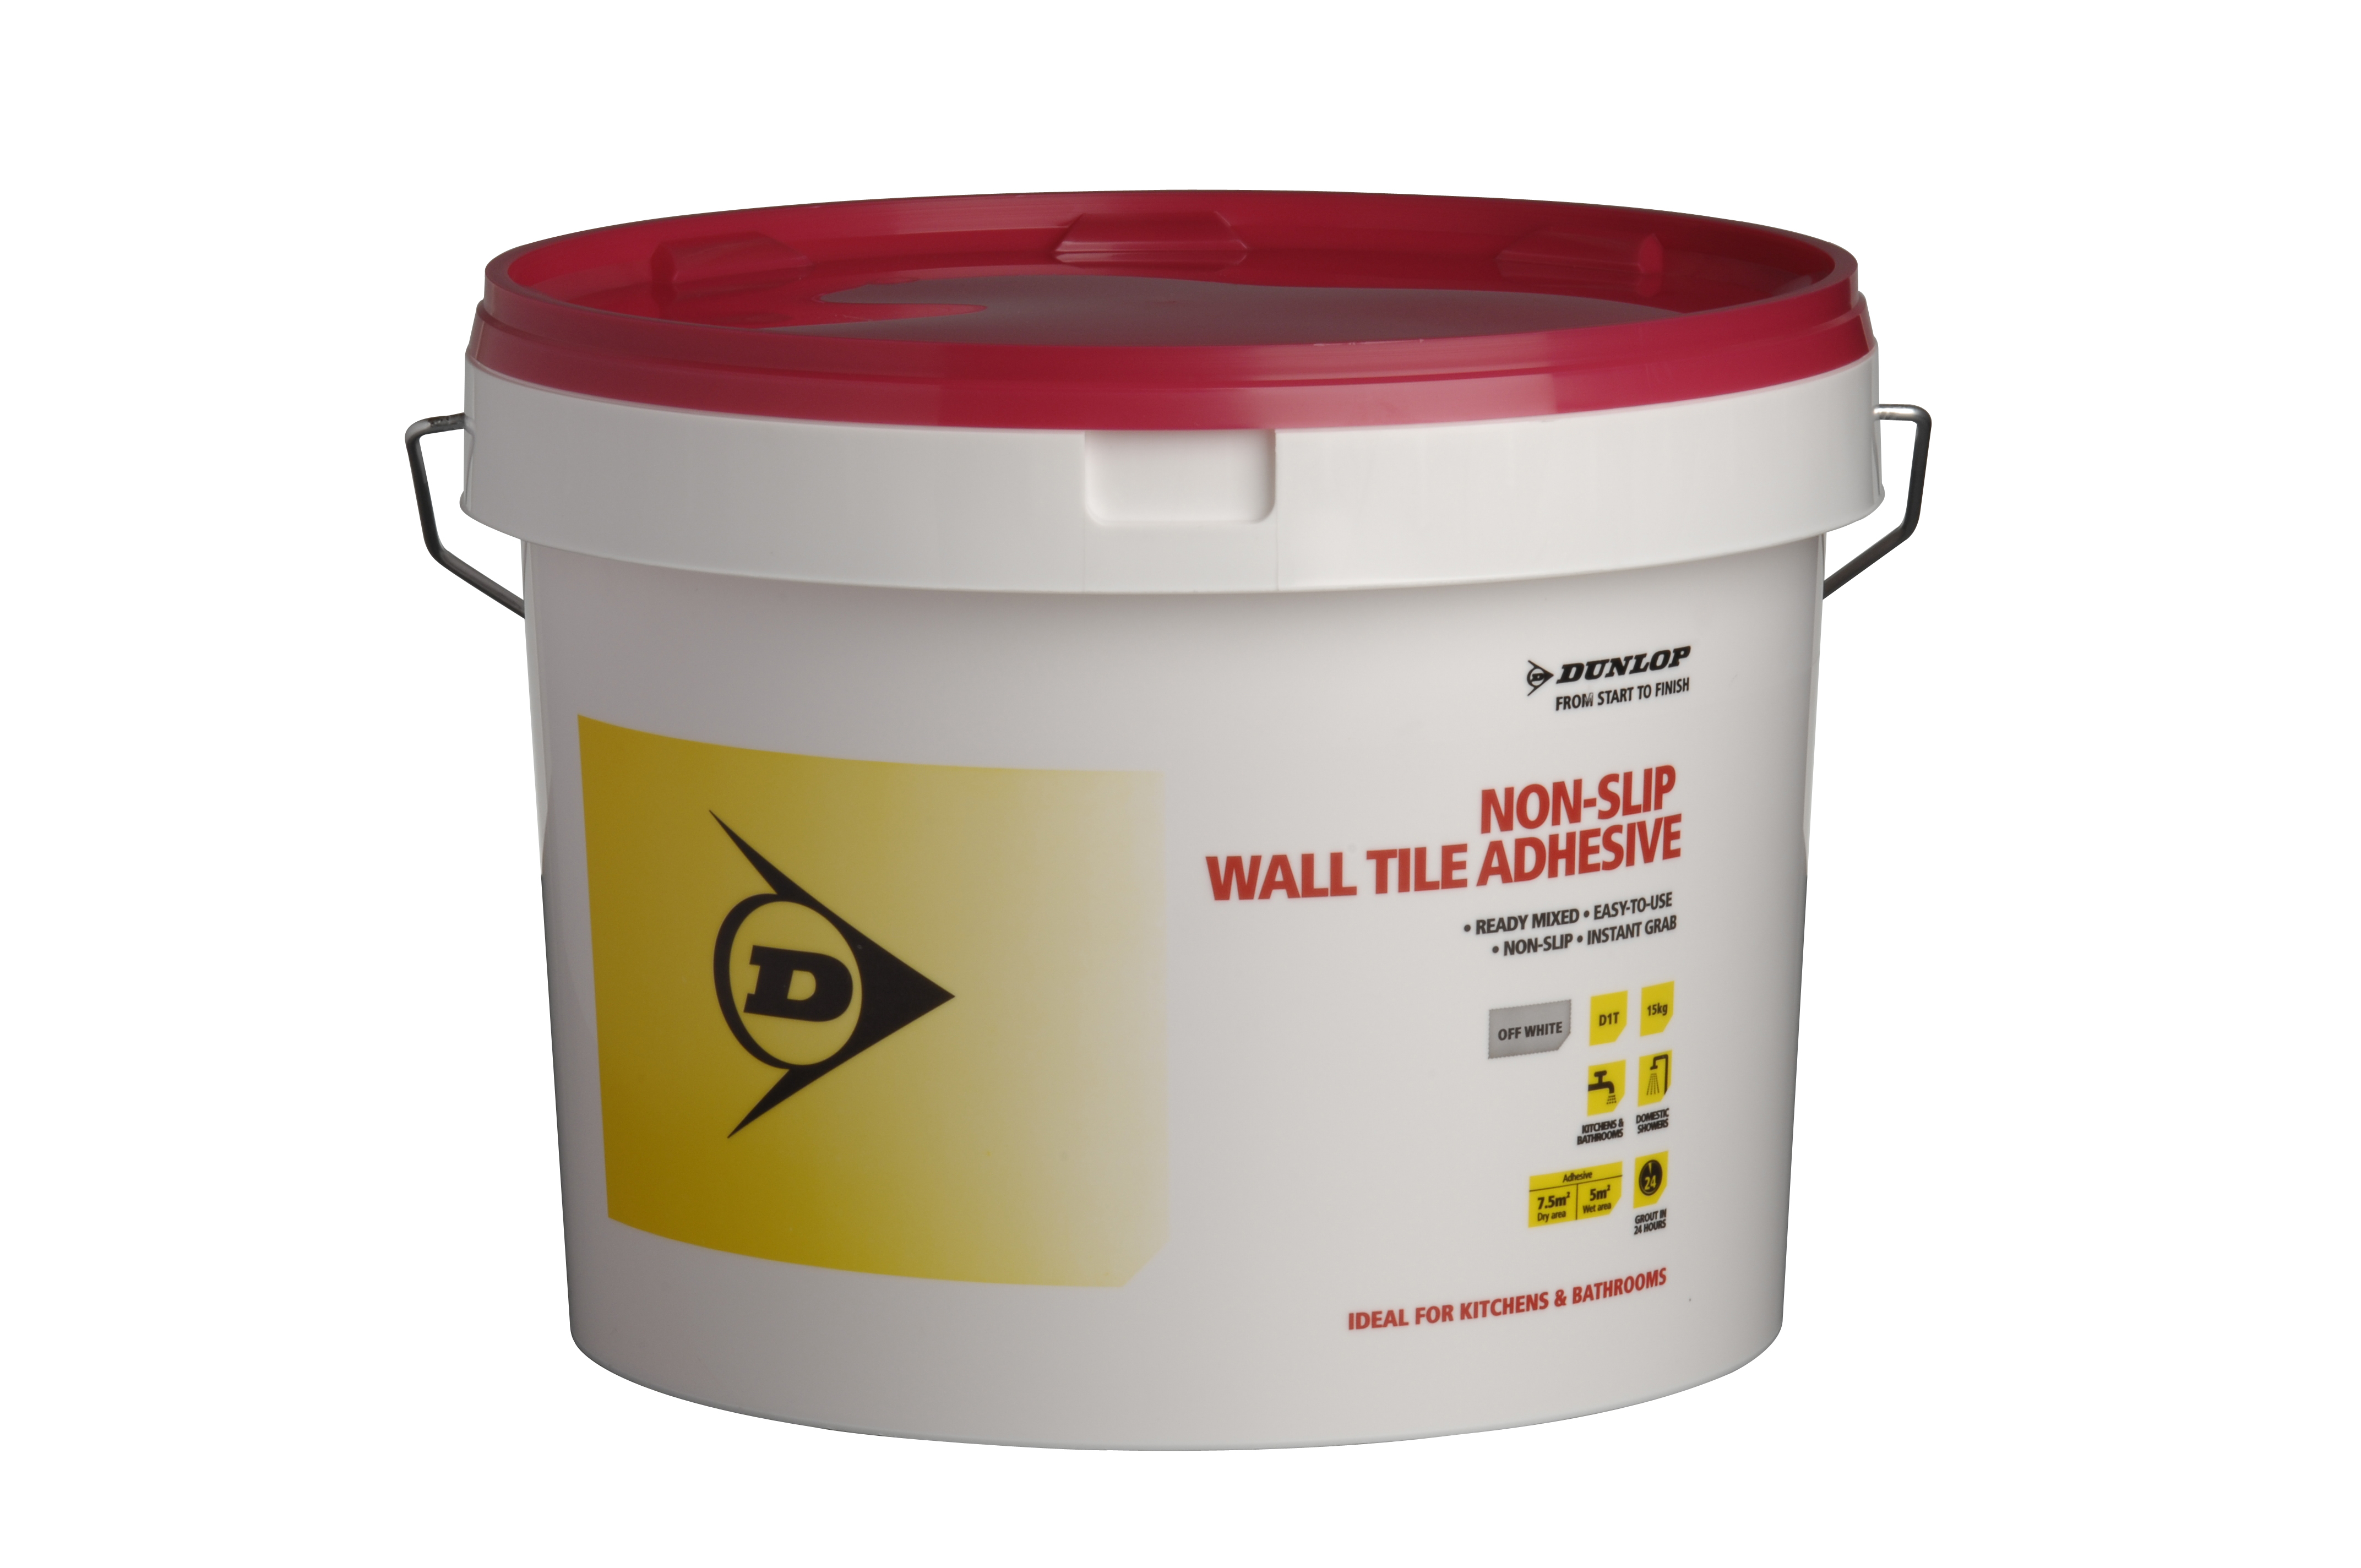 Non-Slip Wall Tile Adhesive sliding off the shelves